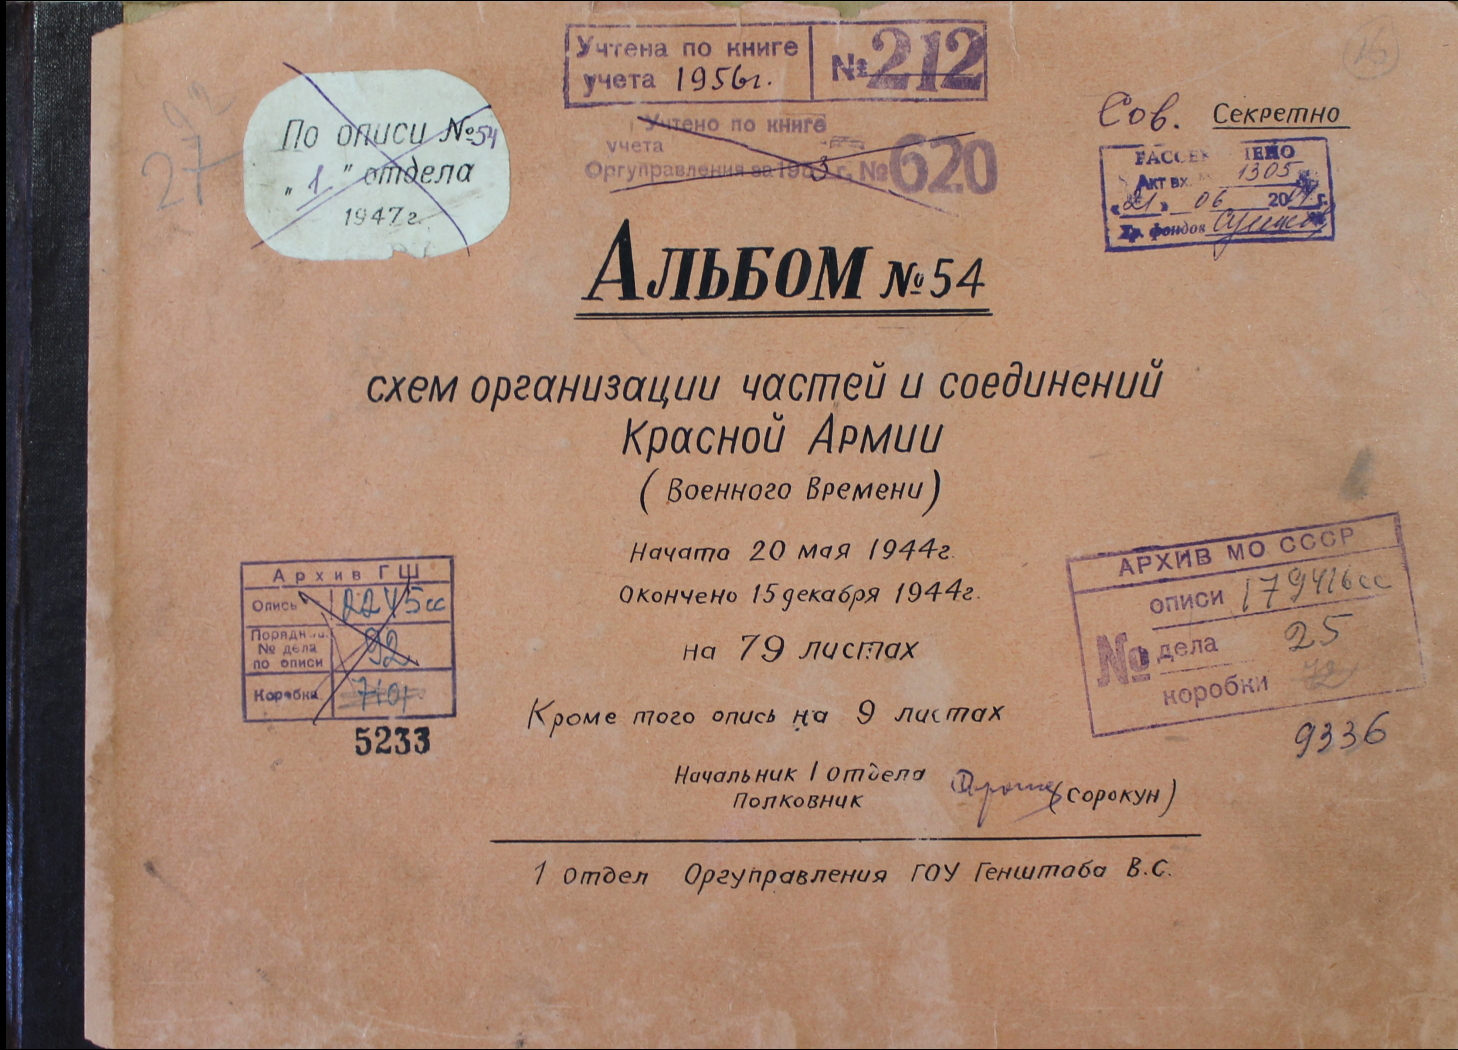 Album 54 from 20th March 1944 to 15 September 1944